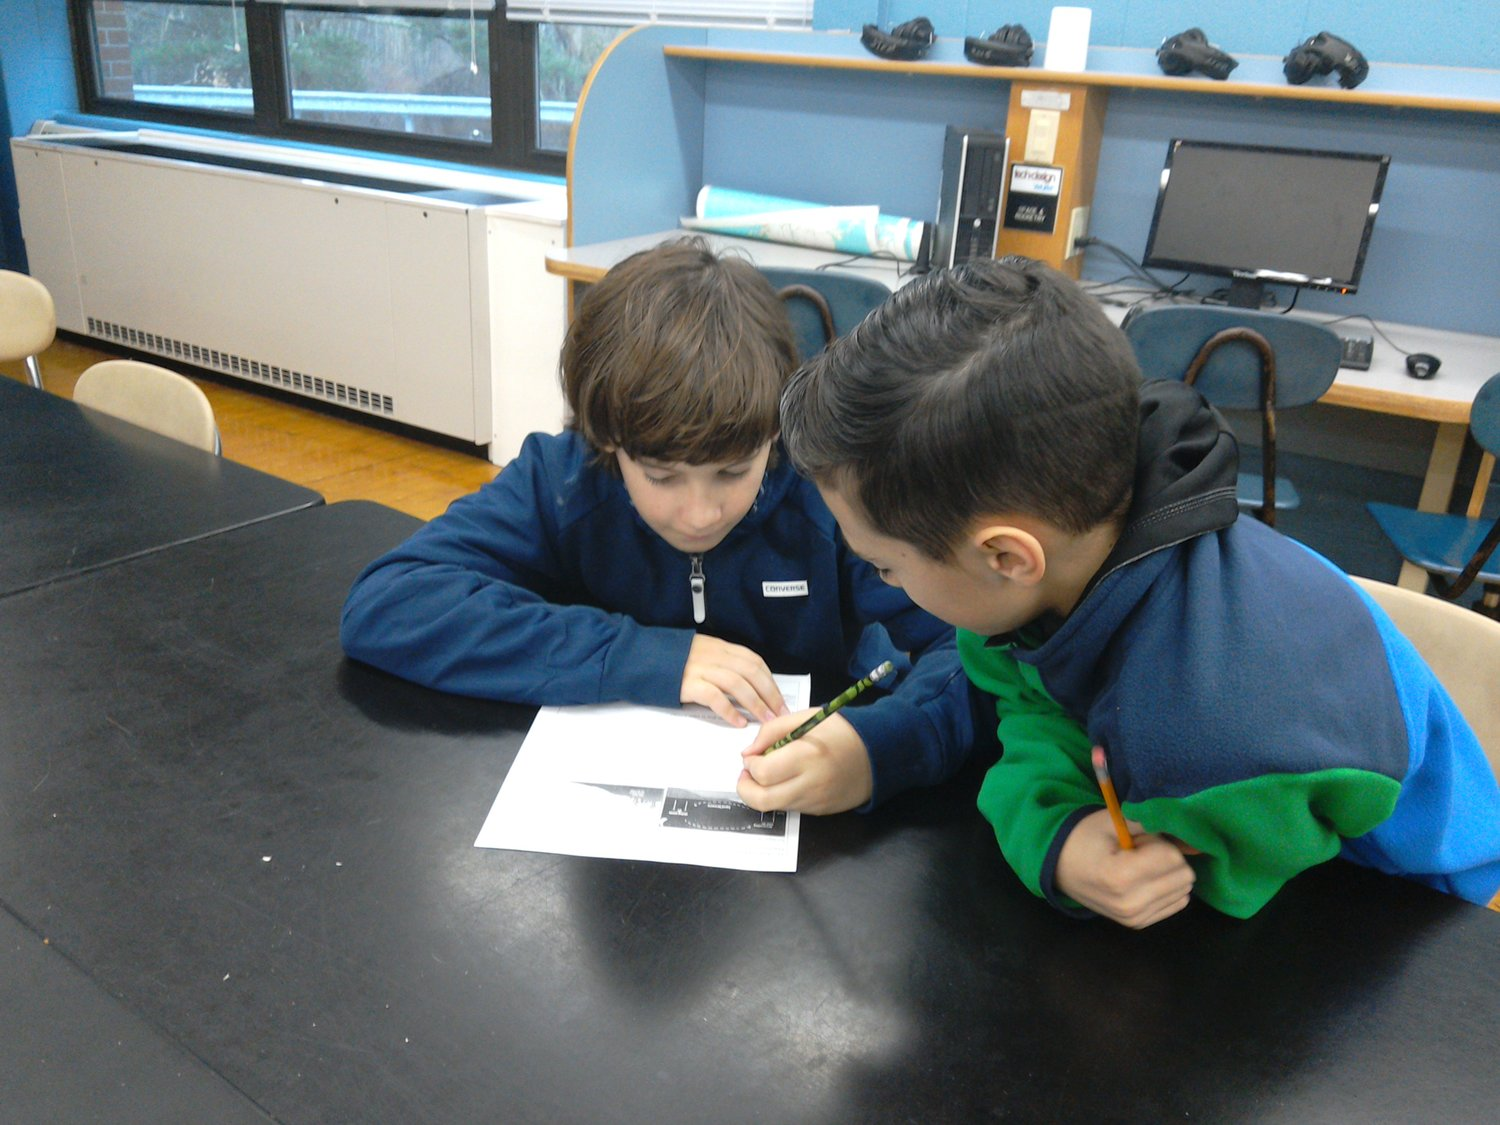 Learning In Action: Two students work together in Mr Kennys STEM class